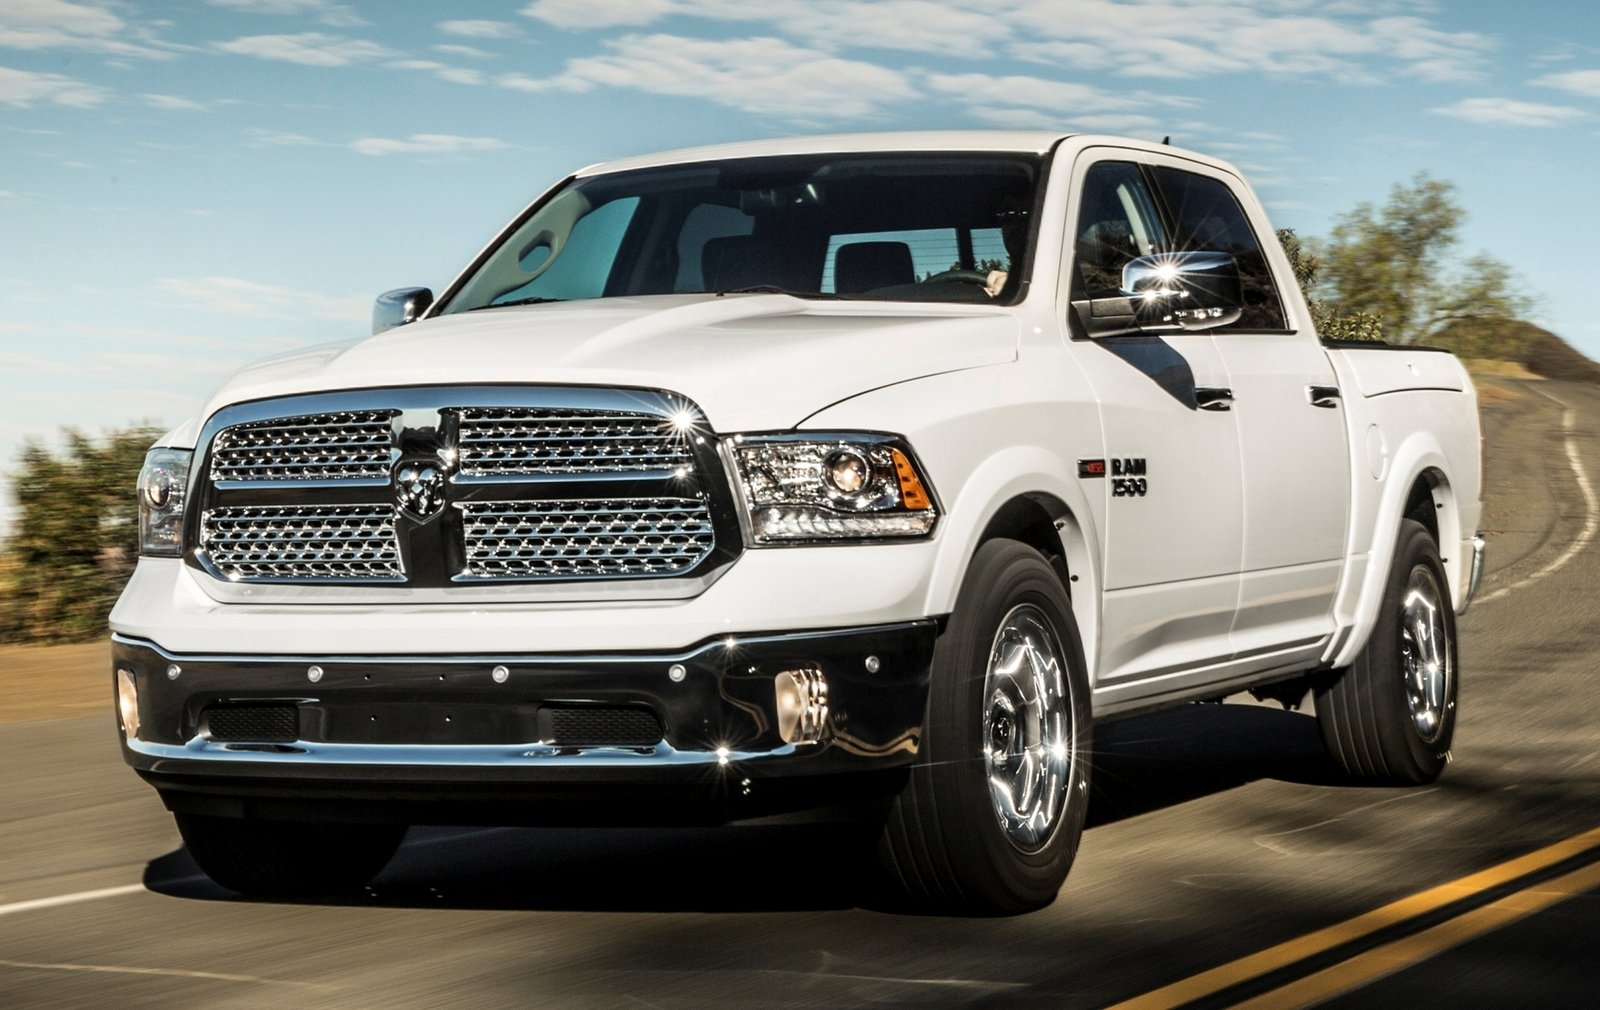 2014 ram 1500 ecodiesel driven picture 527580 car review top speed. Black Bedroom Furniture Sets. Home Design Ideas